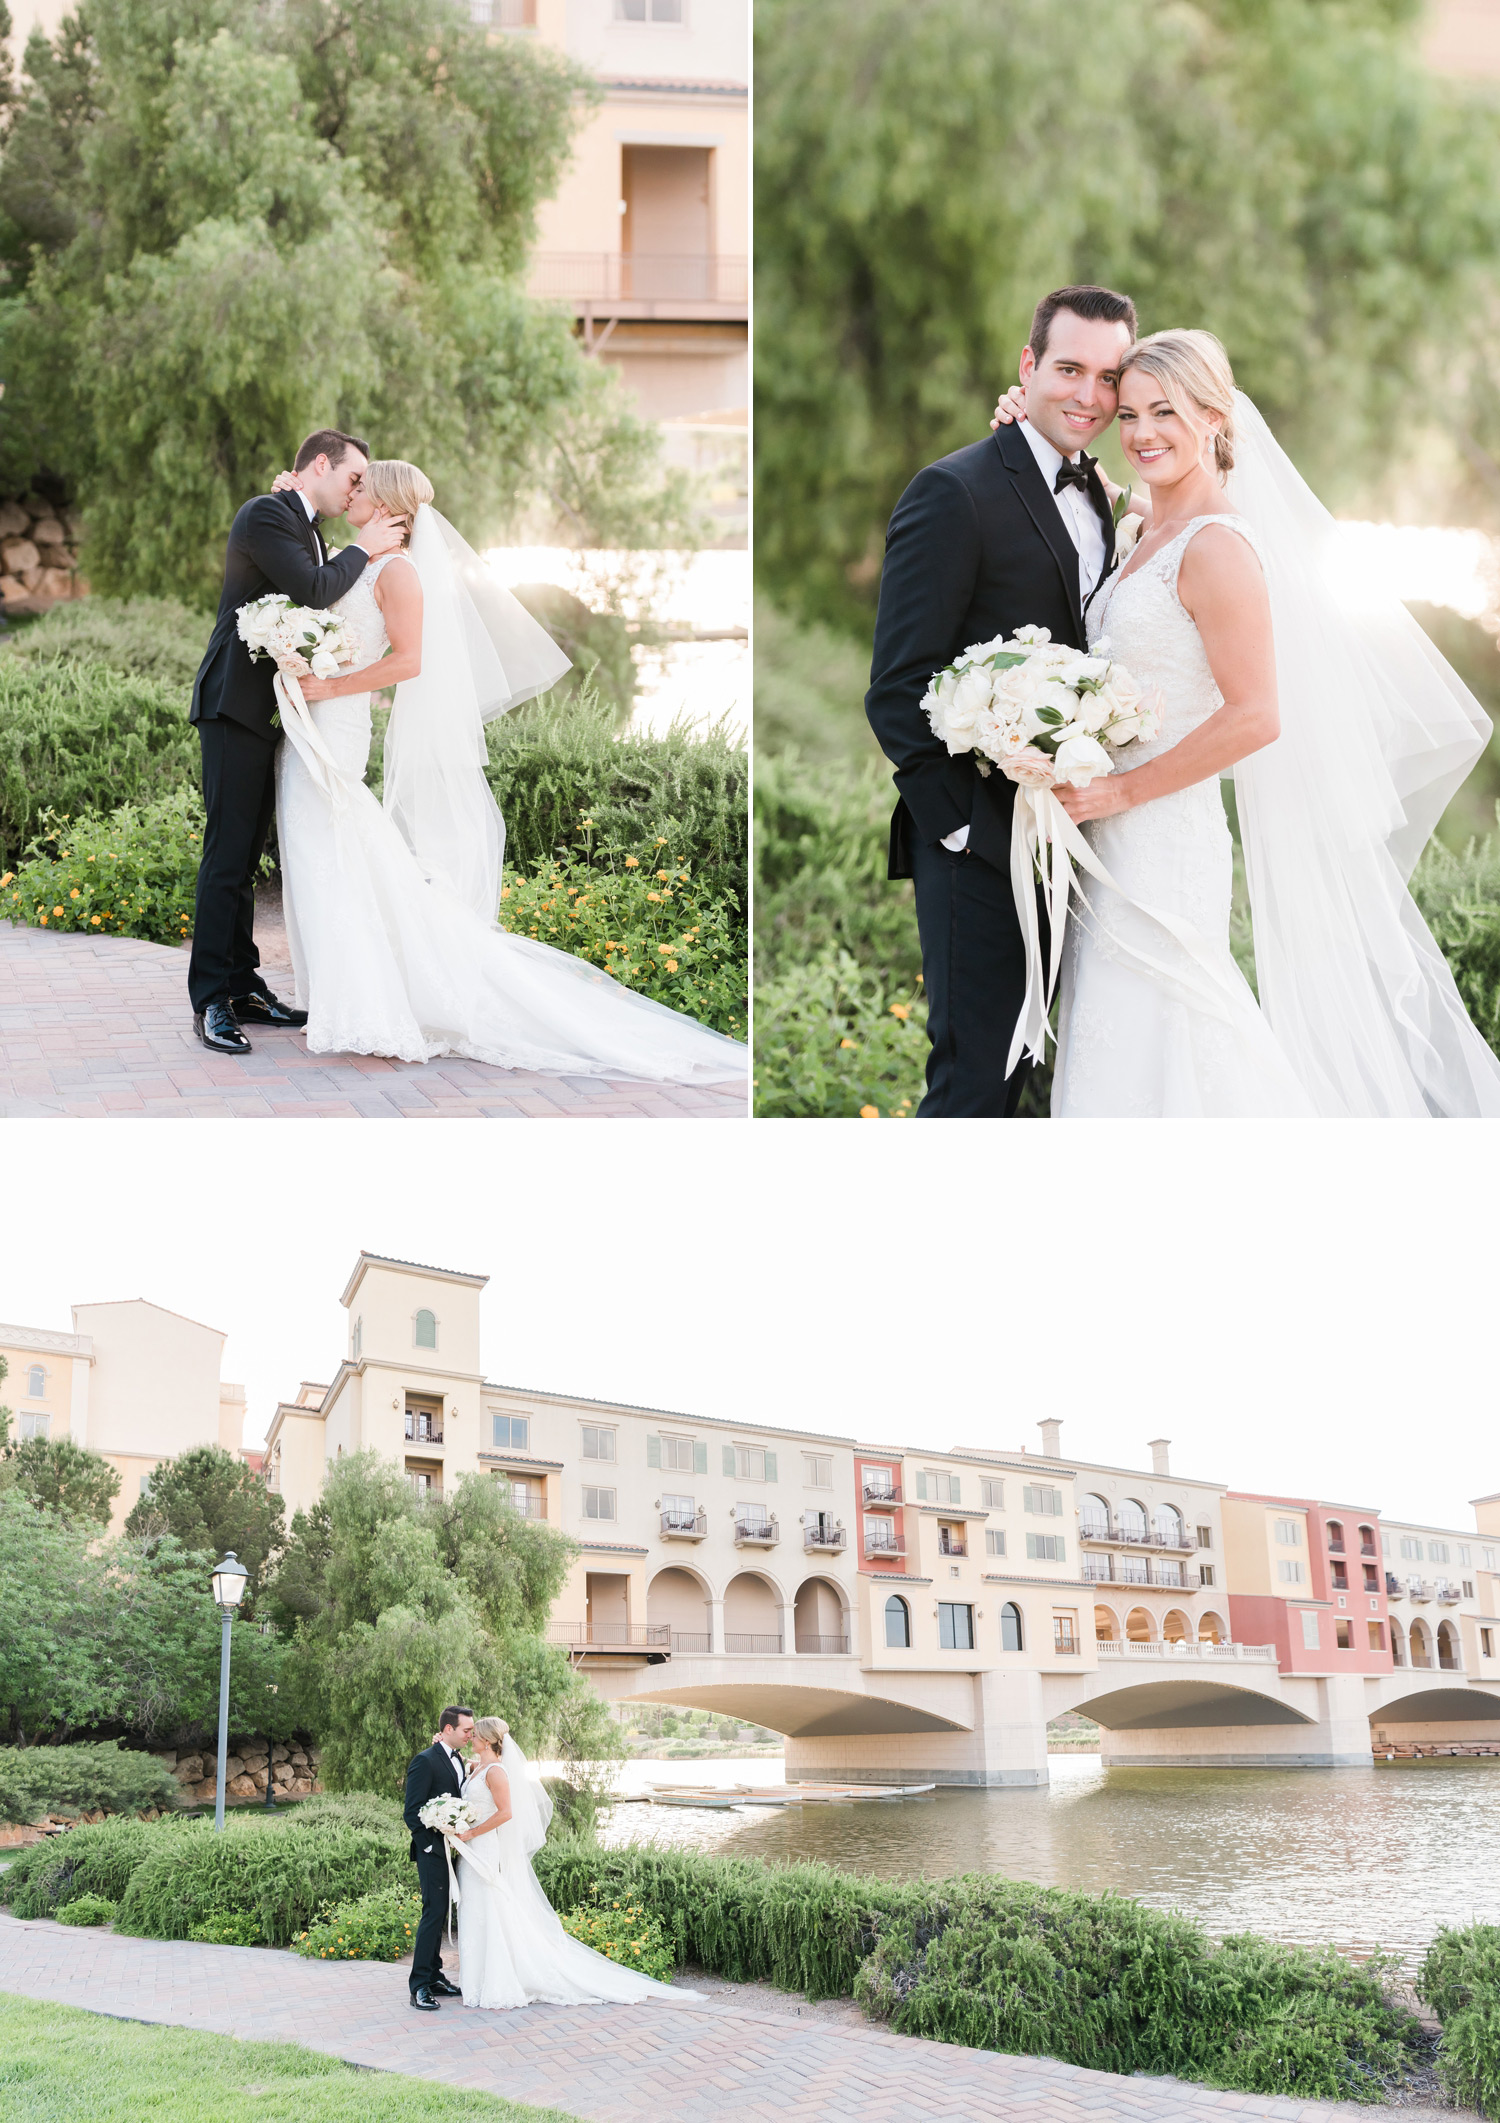 Hilton Lake Las Vegas Wedding Photography | Kristen Marie Weddings + Portraits